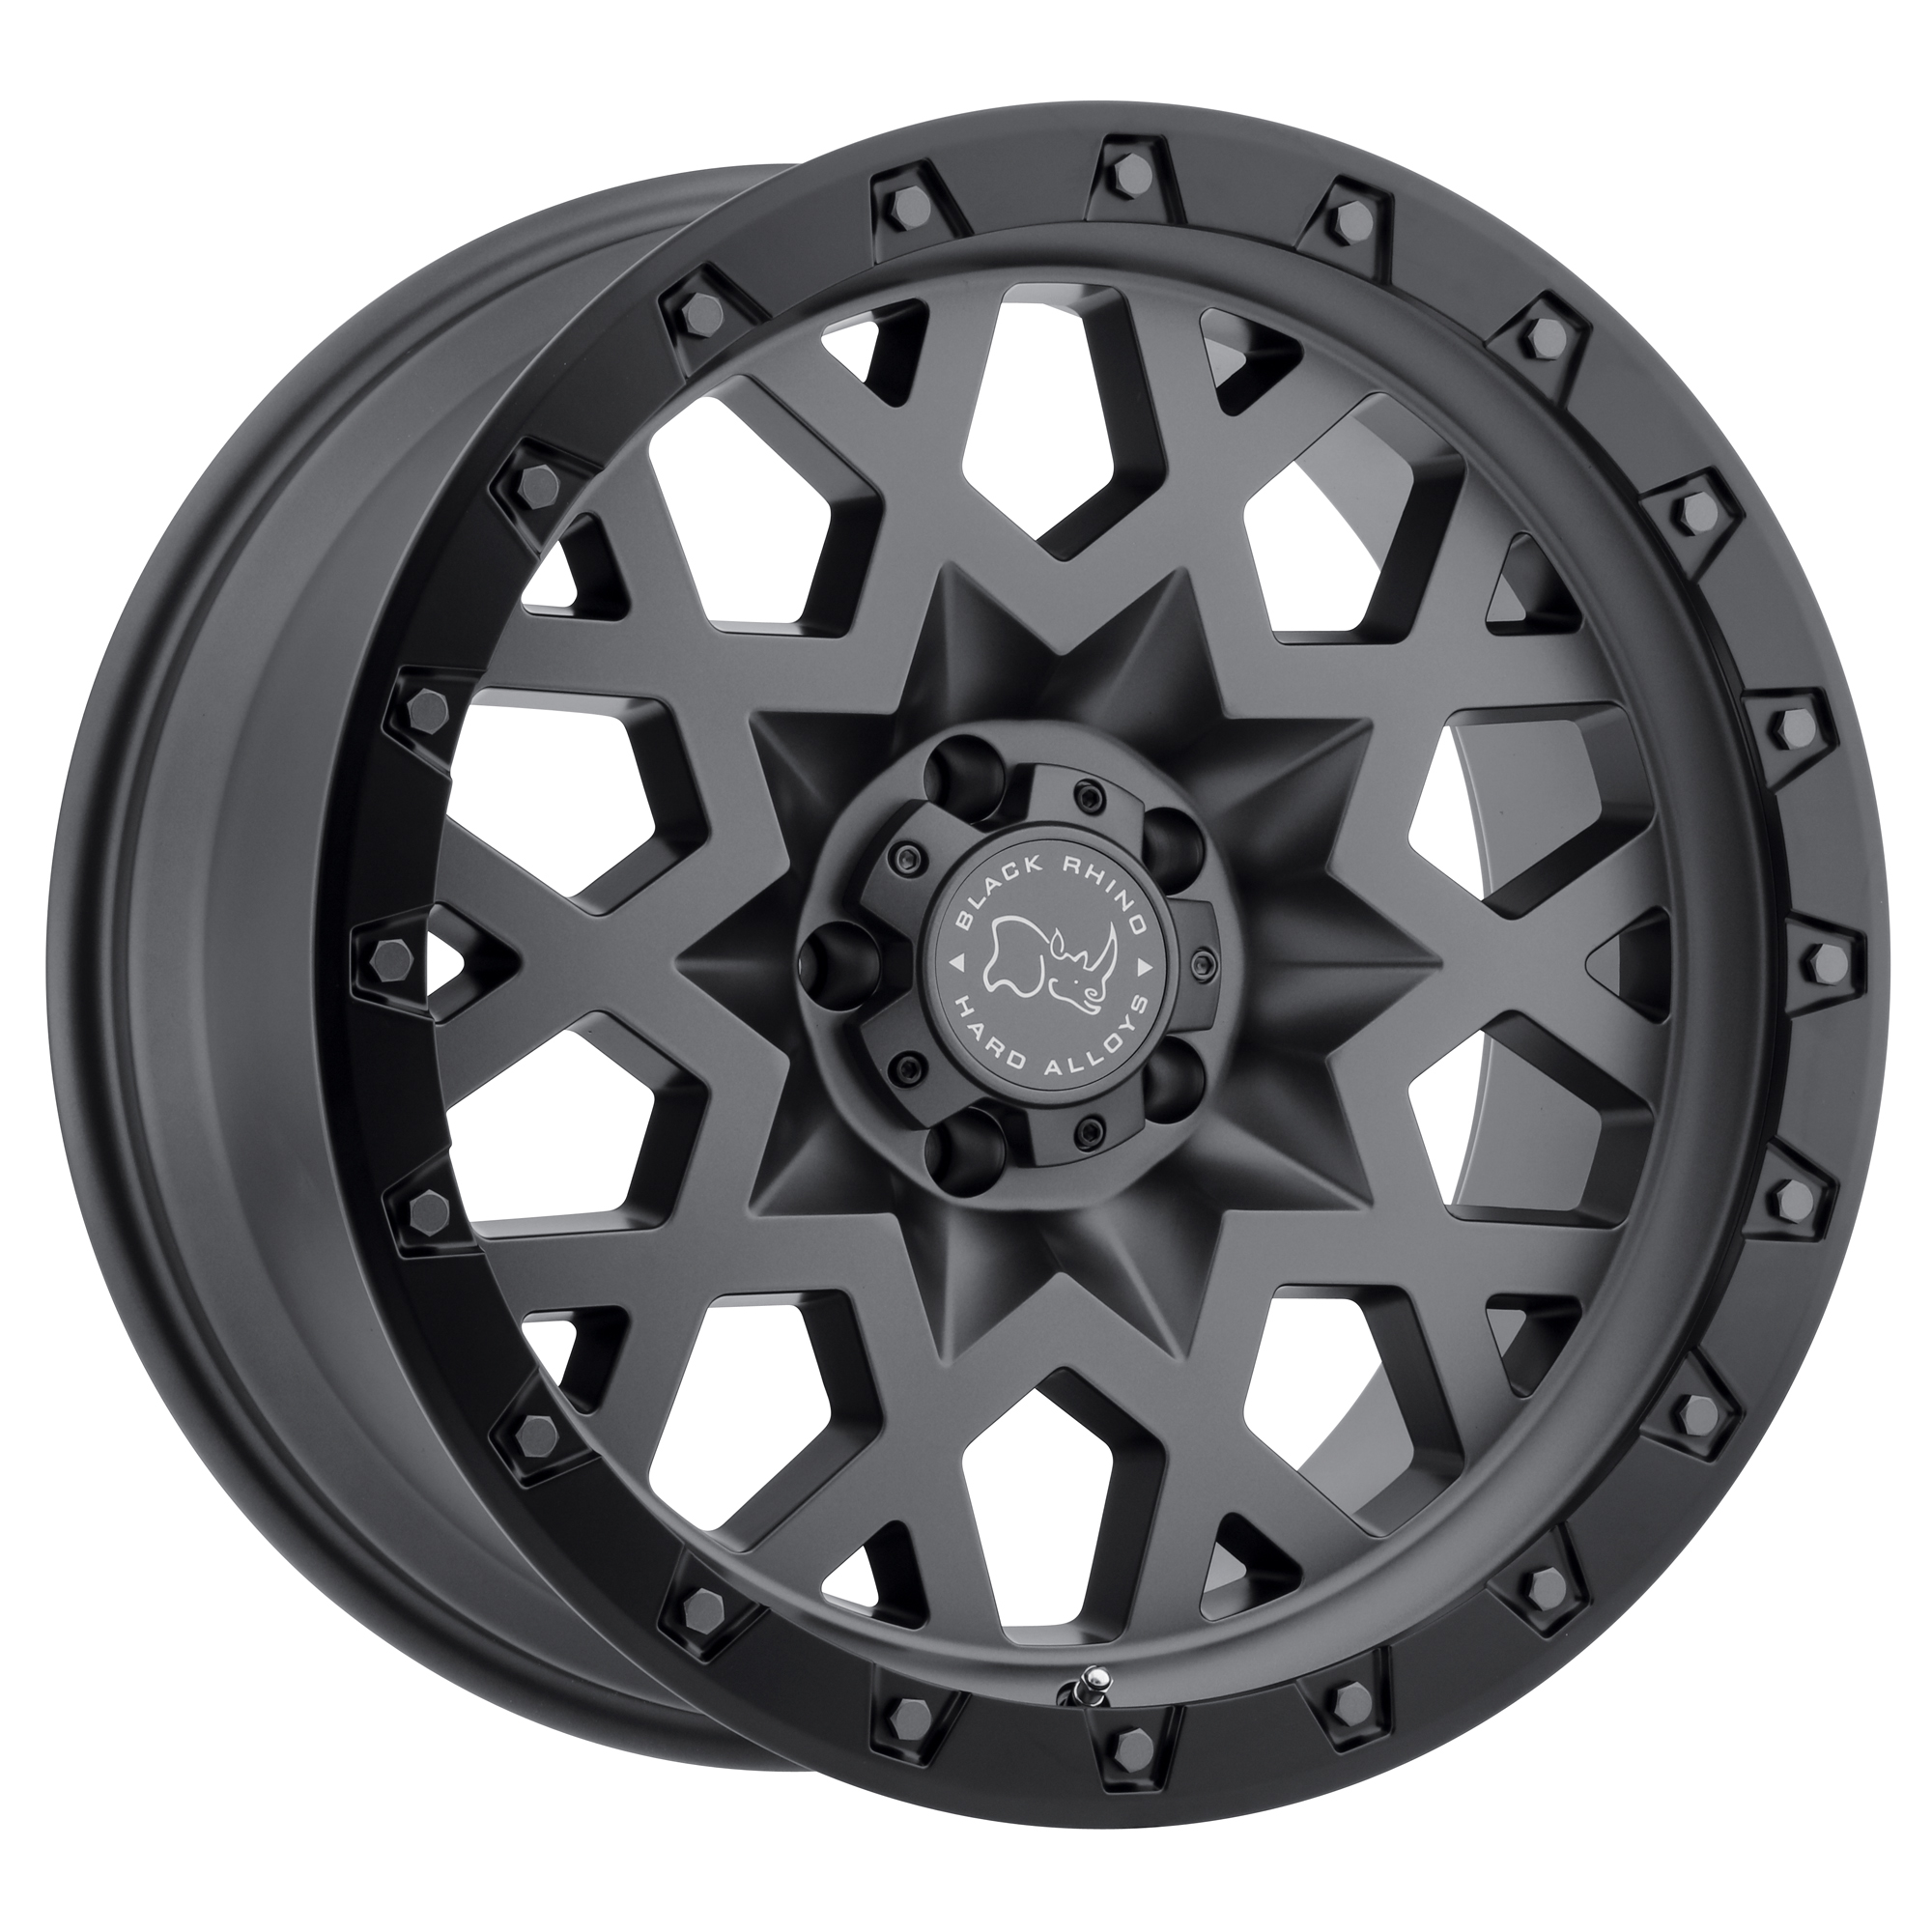 BLACK RHINO SPROCKET hliníkové disky 9,5x20 5x127 ET-18 MATTE GUNMETAL W/BLACK LIP EDGE (GUNMETAL BOLTS)